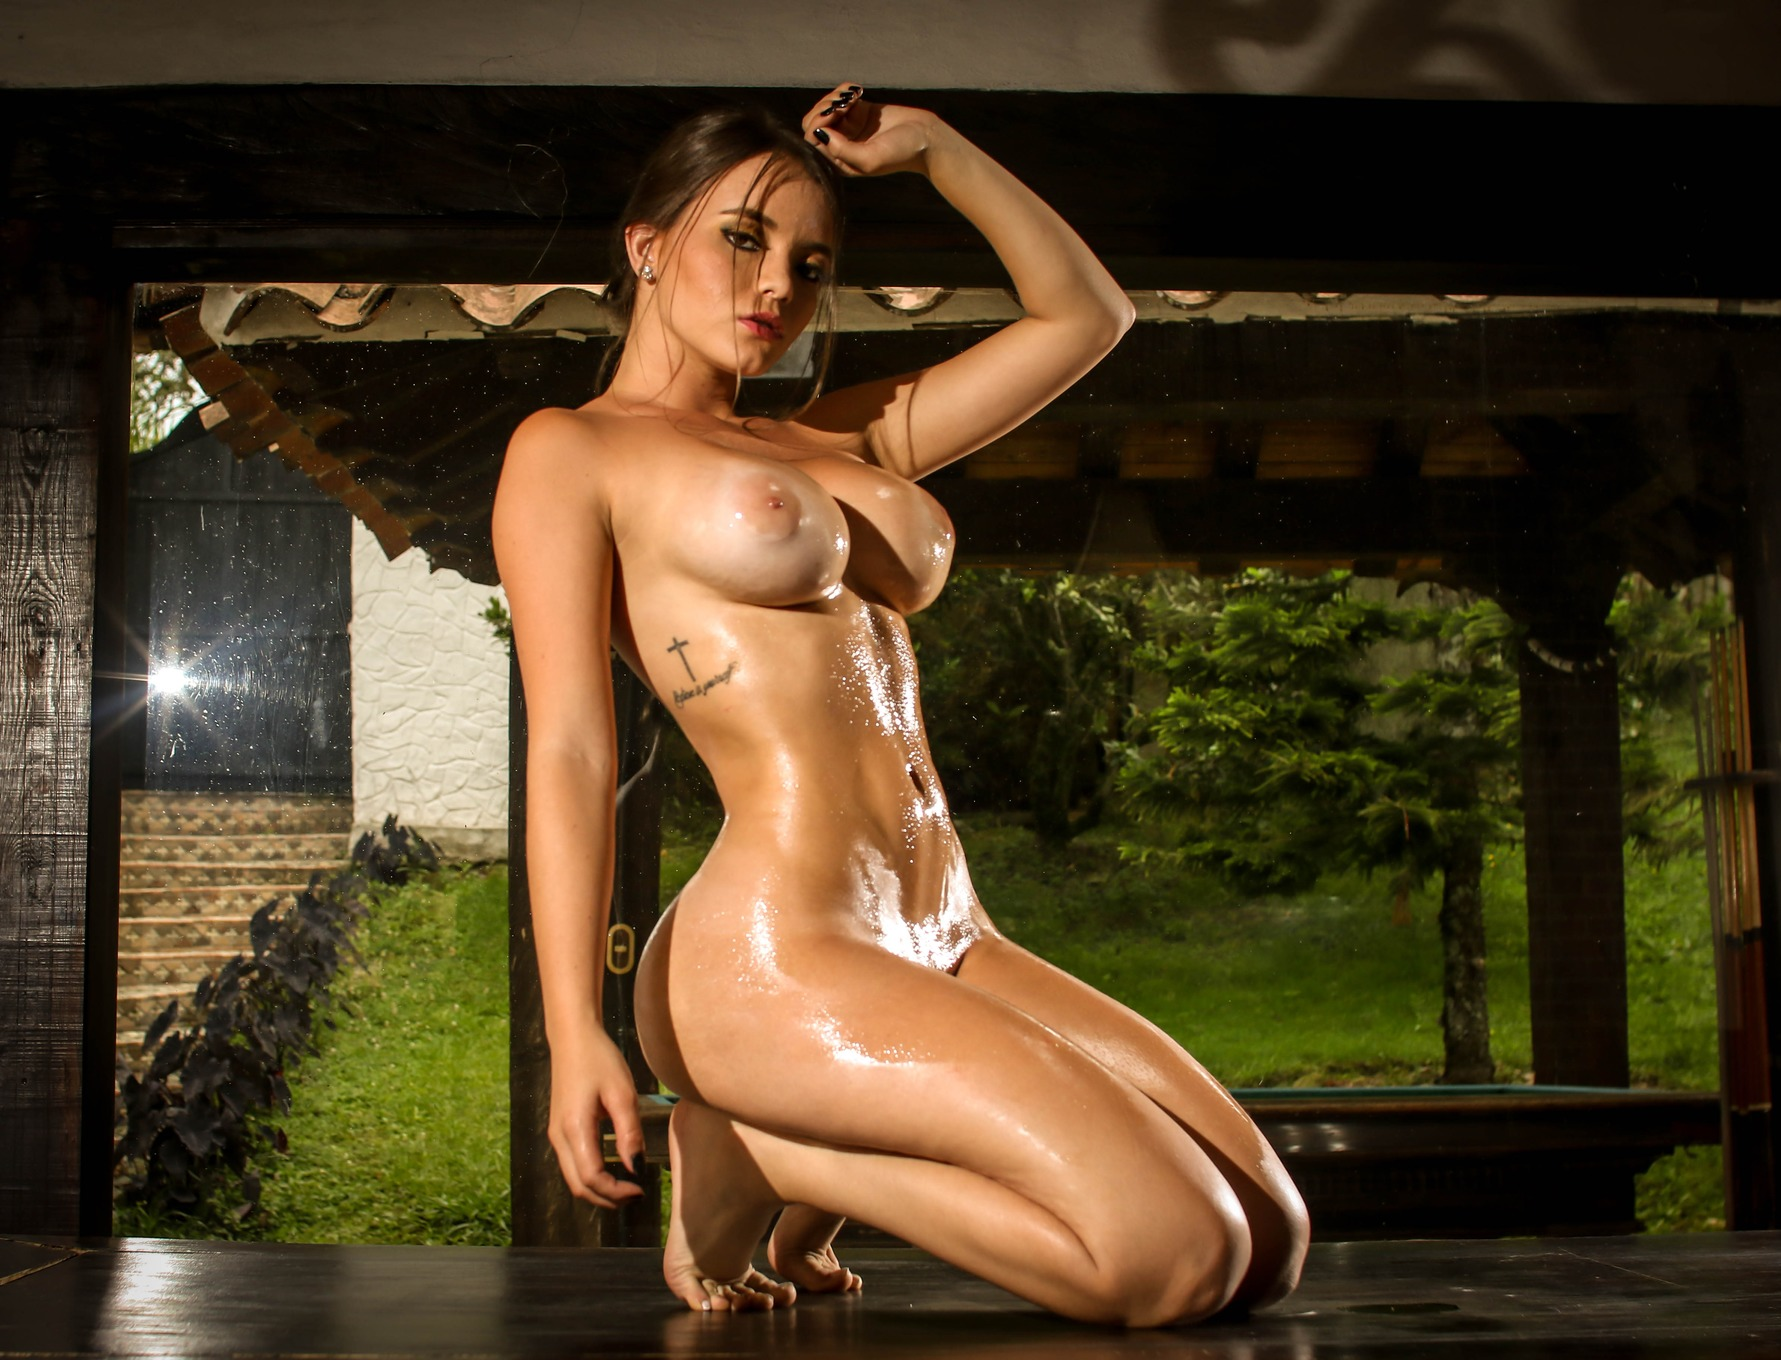 Sexy Woman With Perfect Body Getting Oiled Up